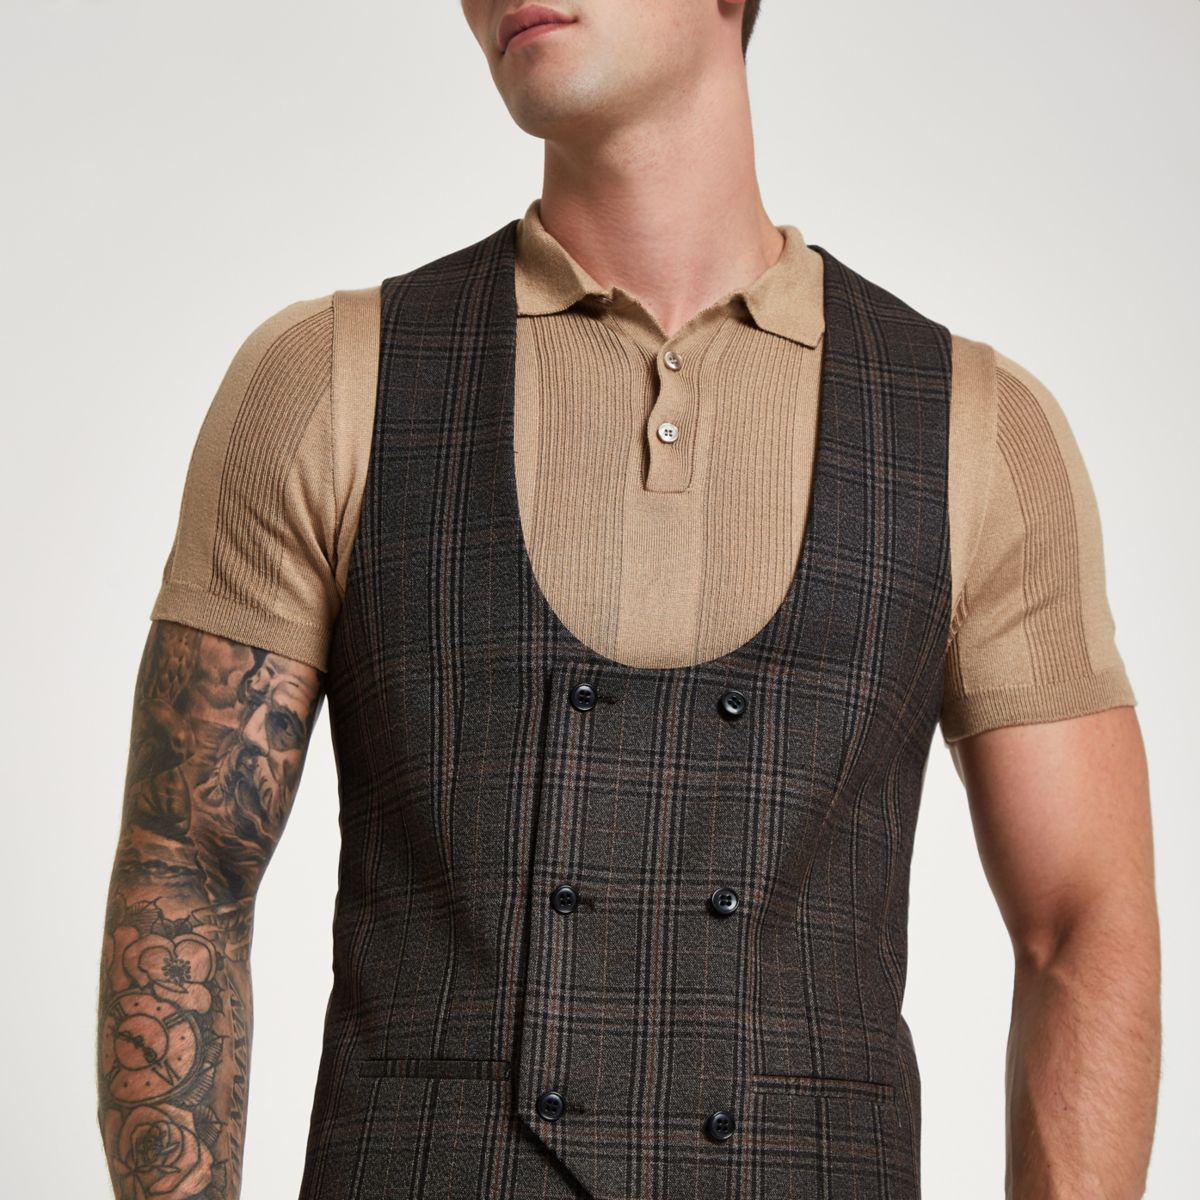 Gilet de costume à carreaux marron